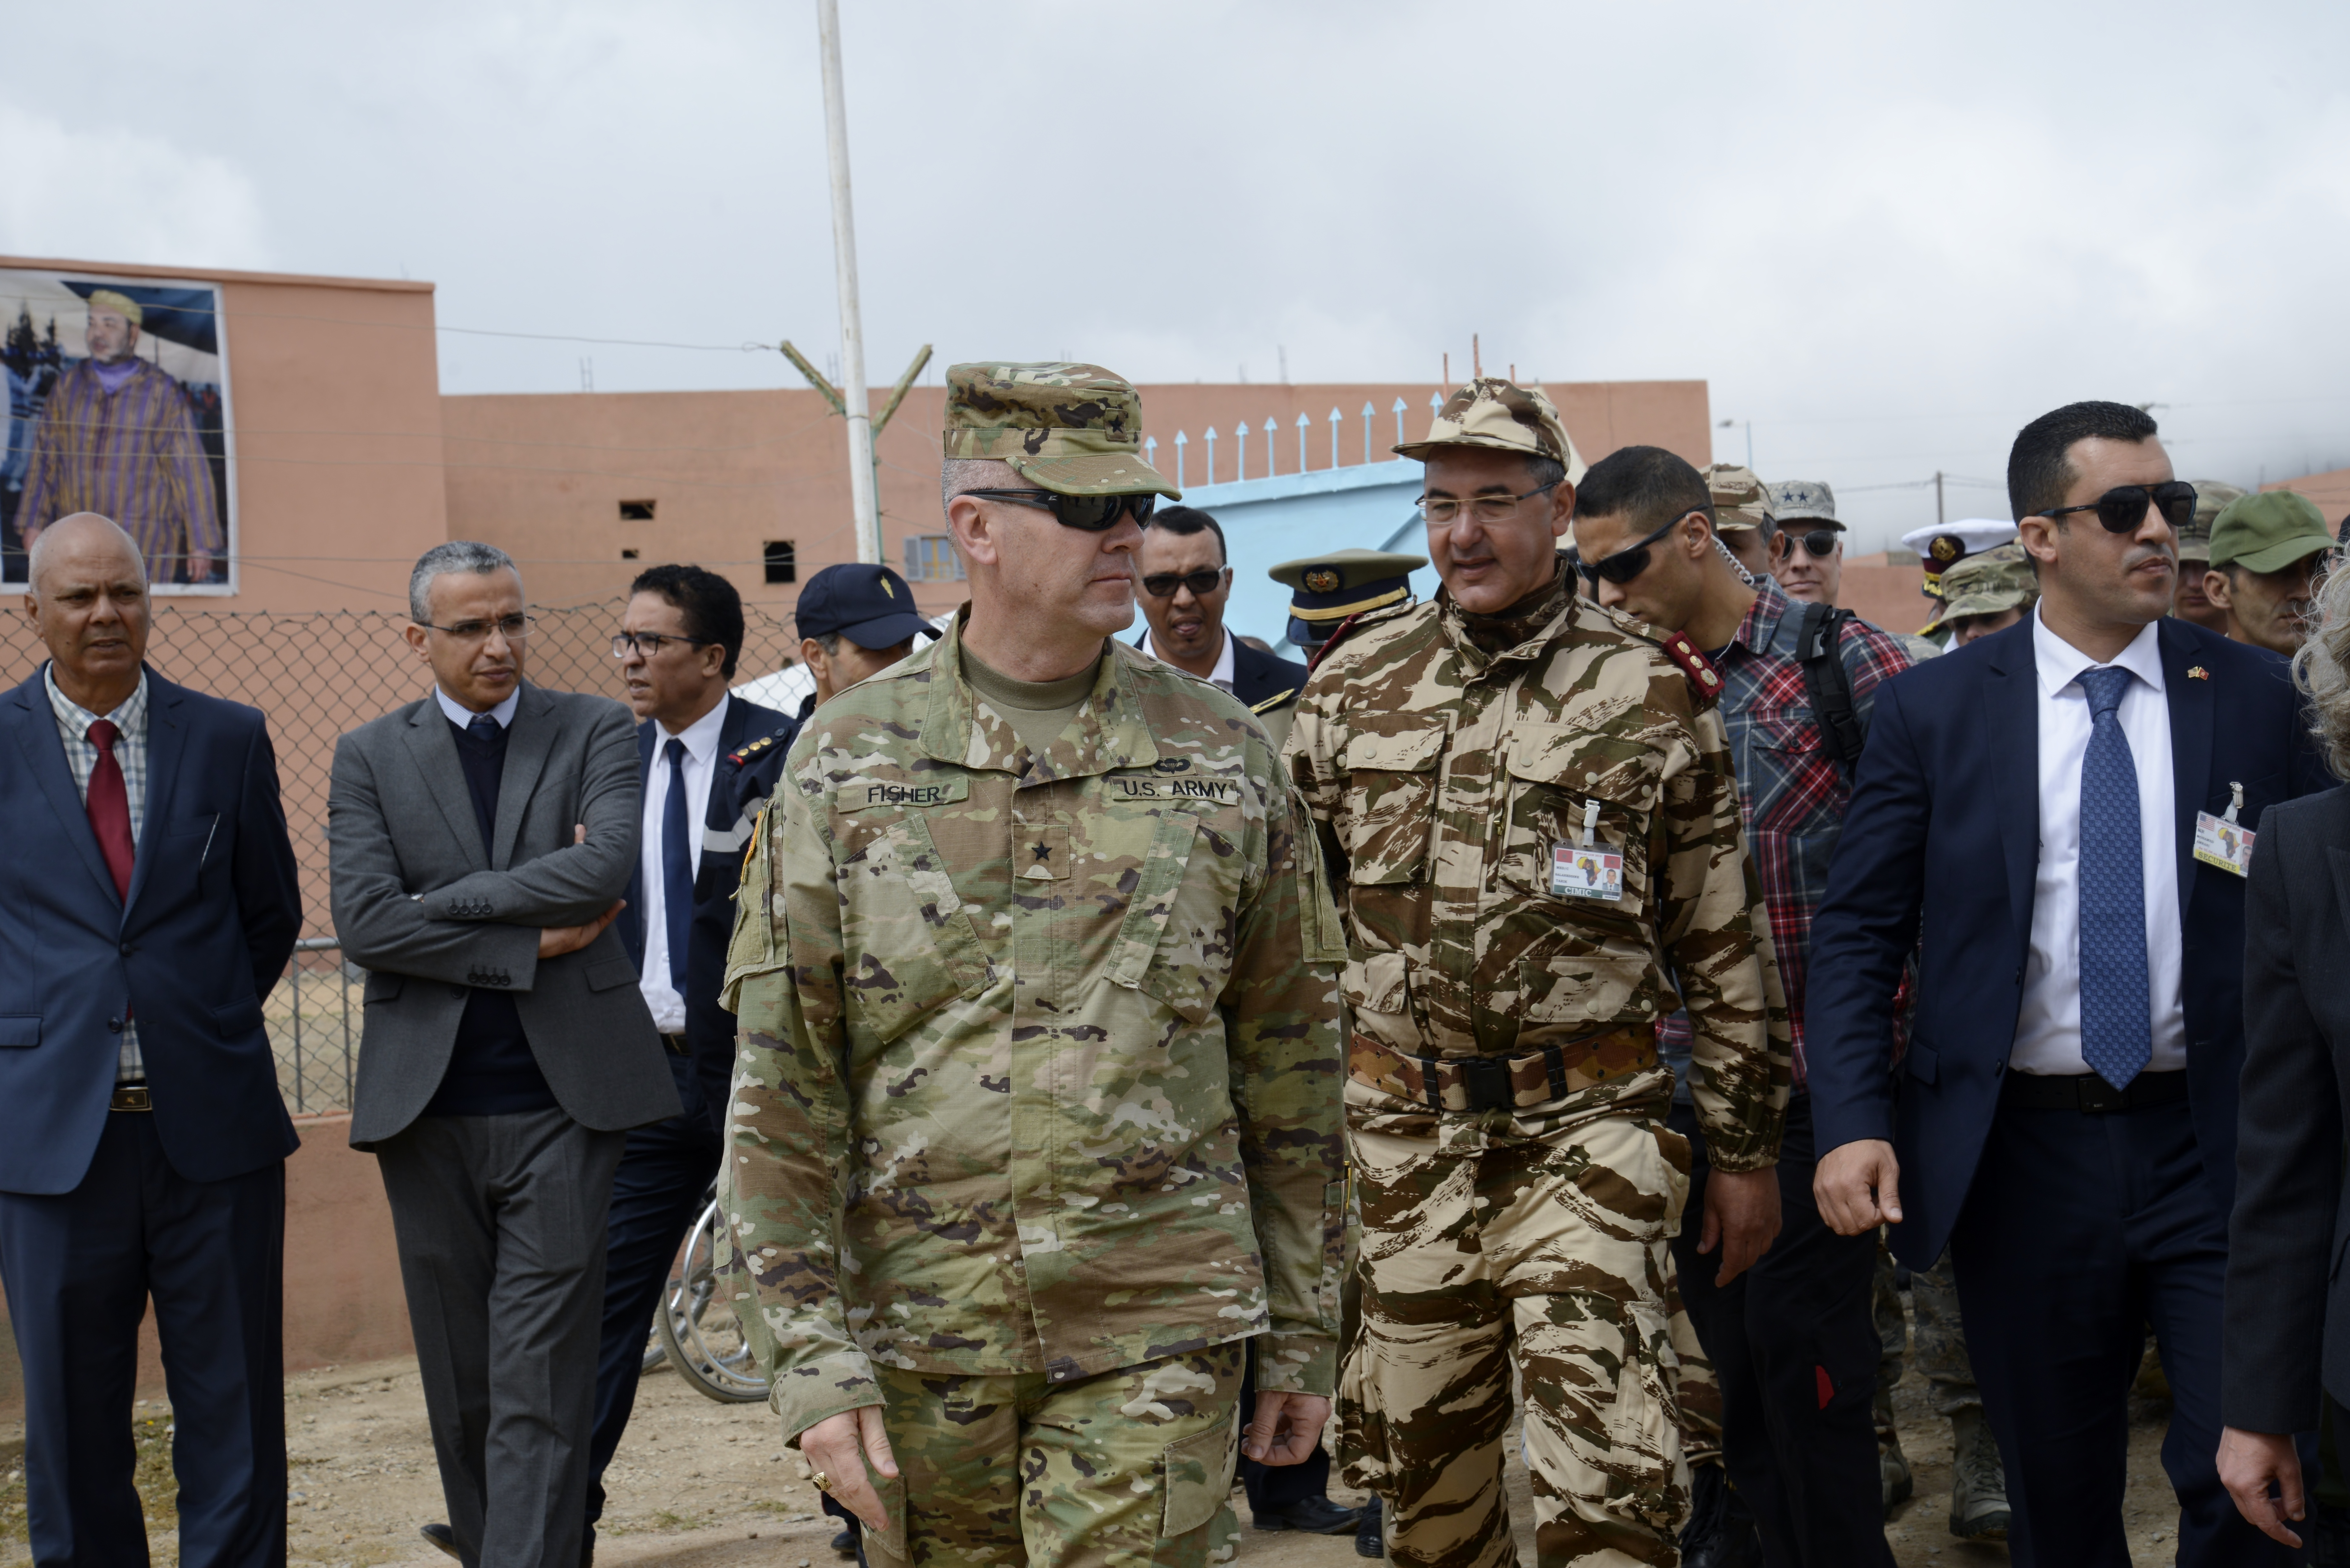 Brigadier General Thomas Fisher, commander of Land Component Command for the Utah Army National Guard, visits the Humanitarian Civic Assistance component of Exercise African Lion 2018 in Bounaamane, Morocco, April 25, 2018.  Exercise African Lion 2018 is a Chairman of the Joint Chiefs of Staff-sponsored, U.S. African Command-scheduled, U.S. Marine Corps Forces Europe and Africa-led, joint and combined exercise conducted in the Kingdom of Morocco. African Lion offers an opportunity to improve interoperability and cooperation while demonstrating the strong military bond that exists between the participating nations. (U.S. Army National Guard photo by Maj. Samantha Madsen)